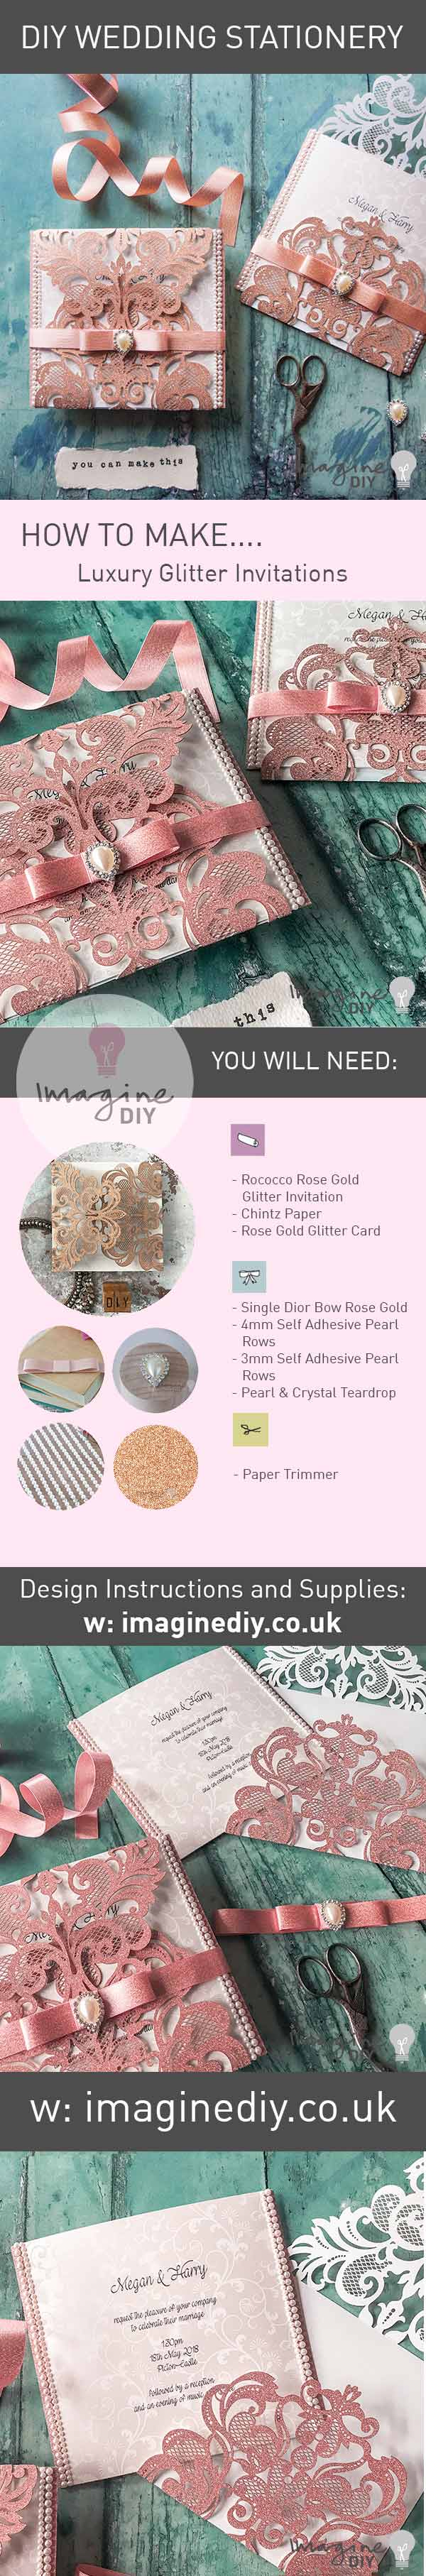 How to make your own luxury glitter wedding invitations with pearls. DIY wedding stationery supplies and instructions